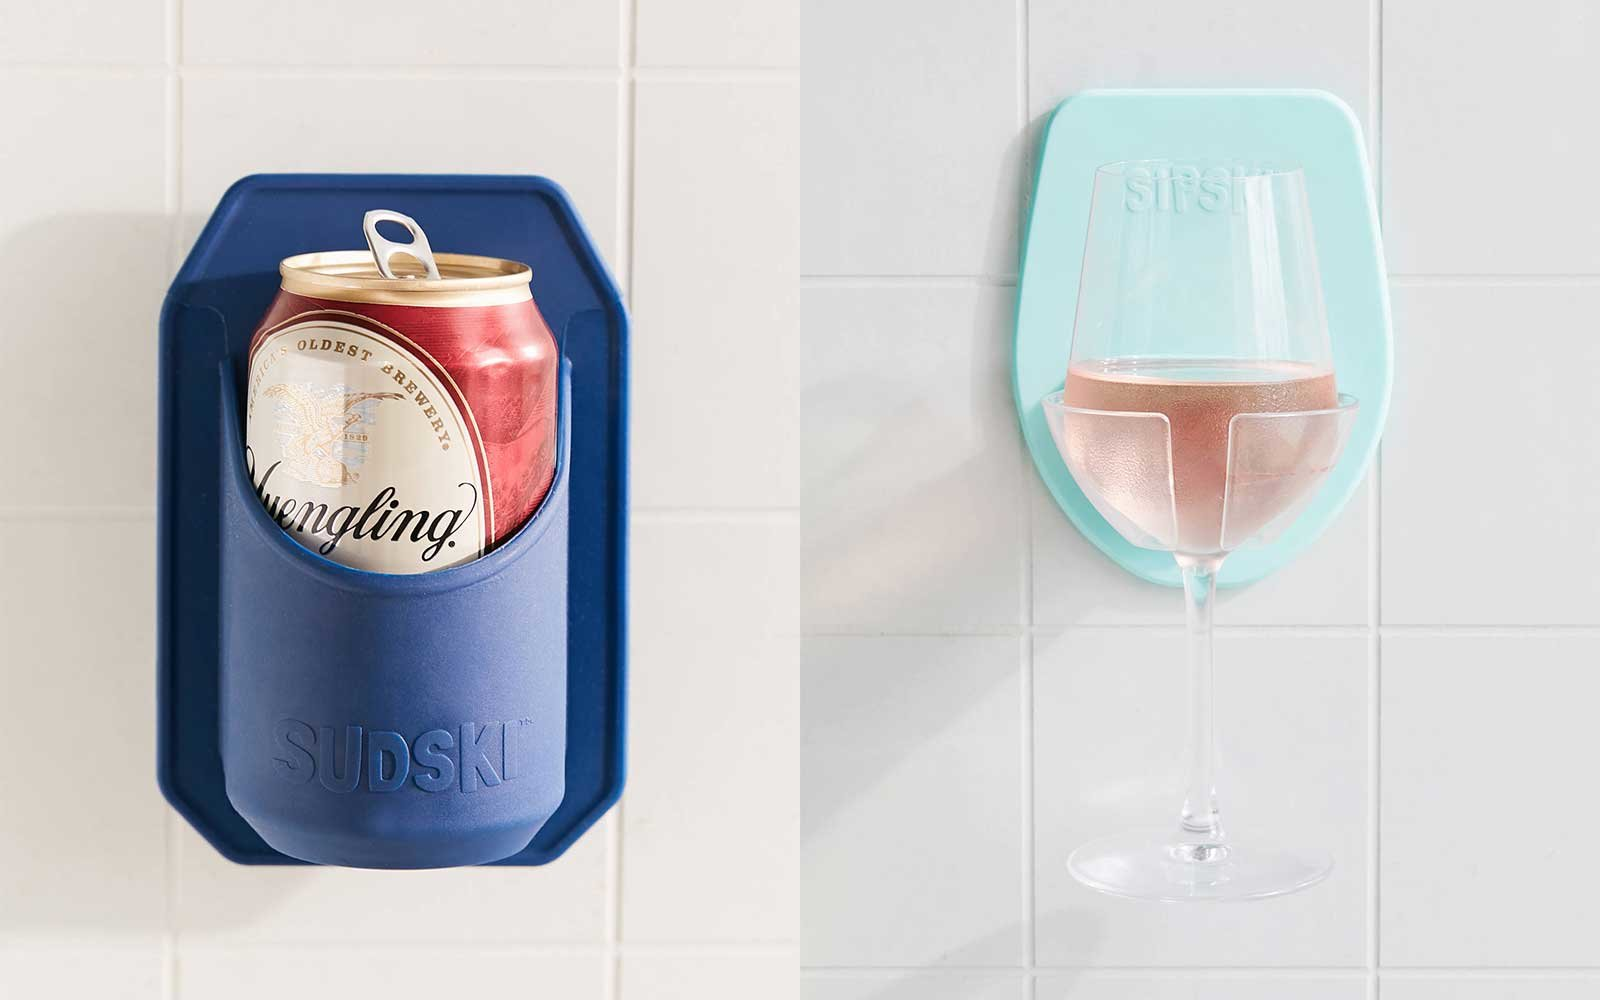 Shower holders for your drinks